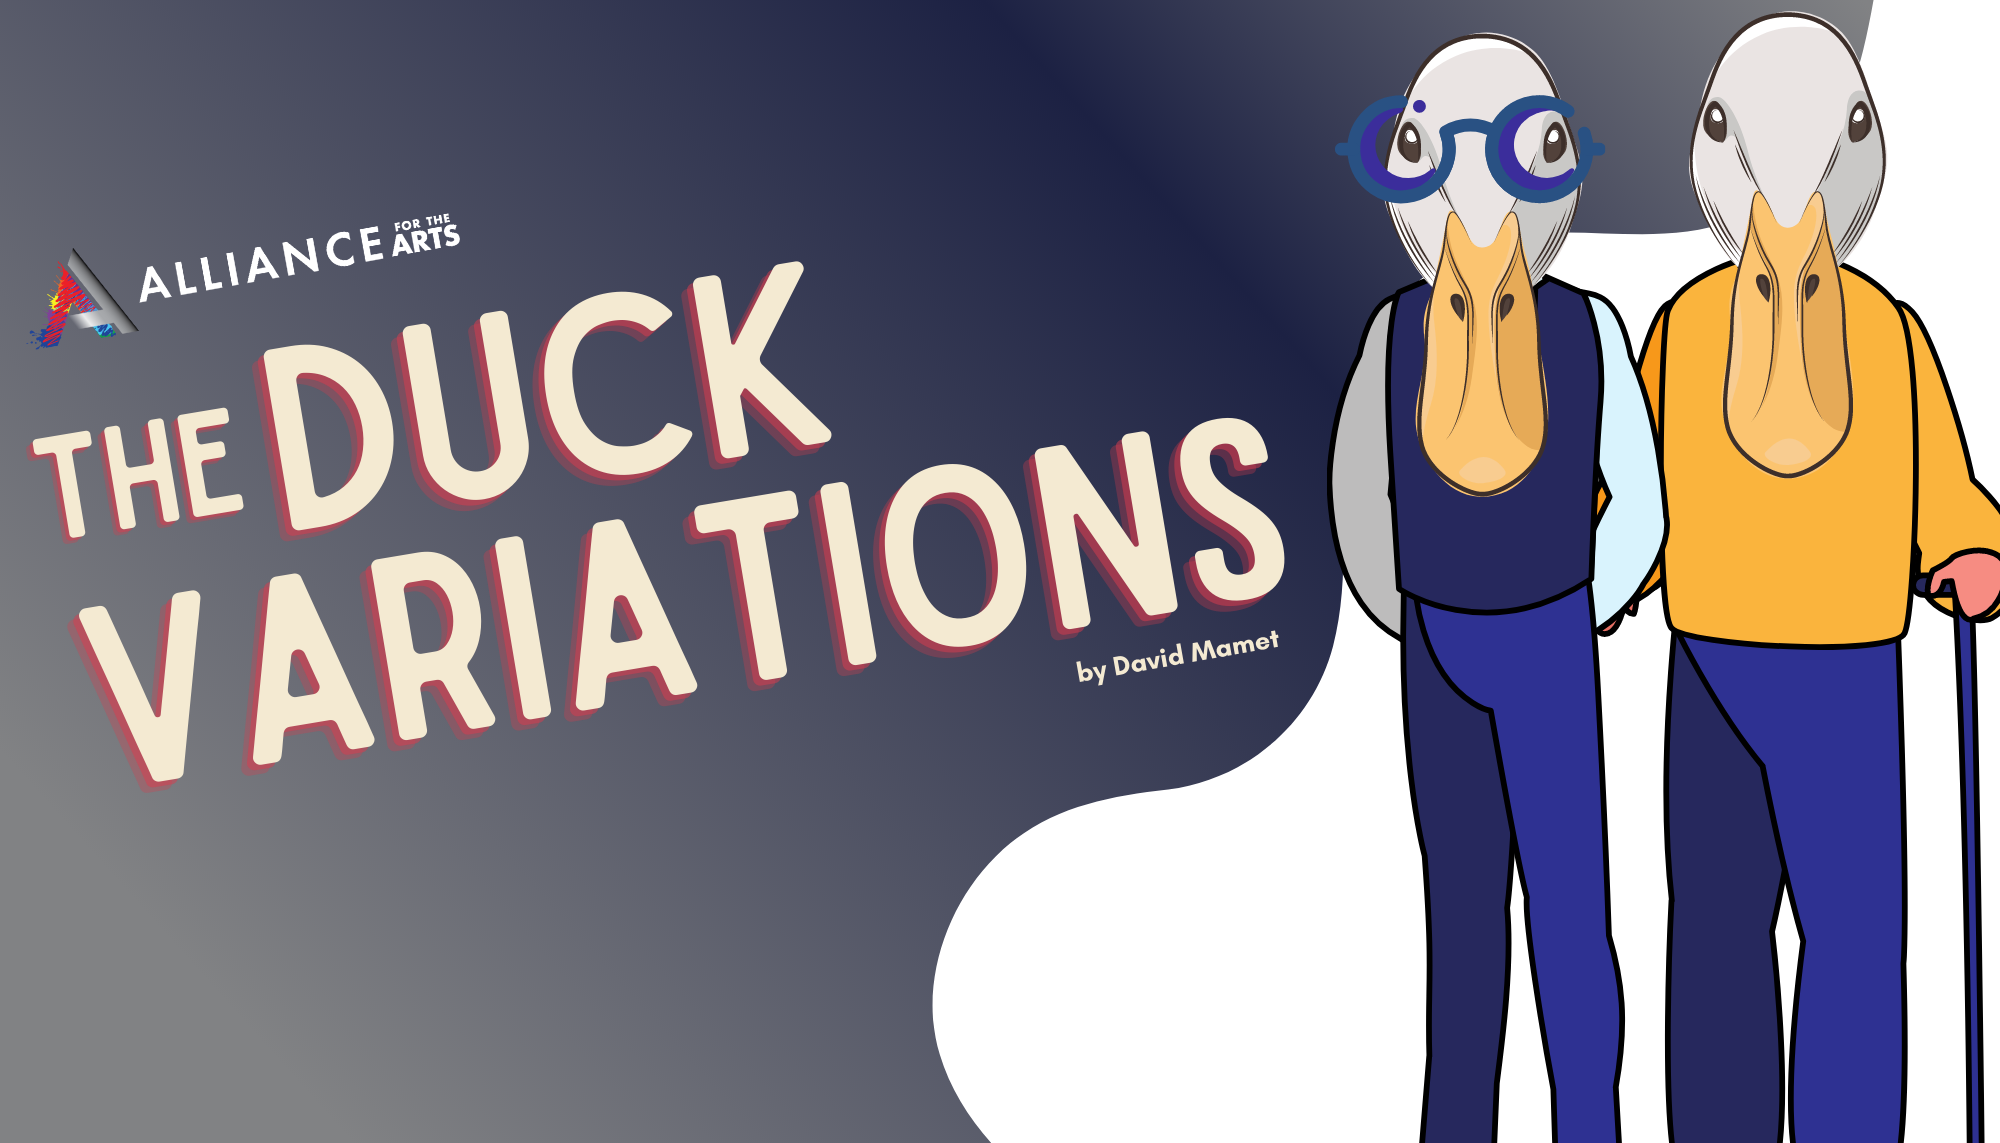 THE DUCK VARIATIONS BY DAVID MAMET